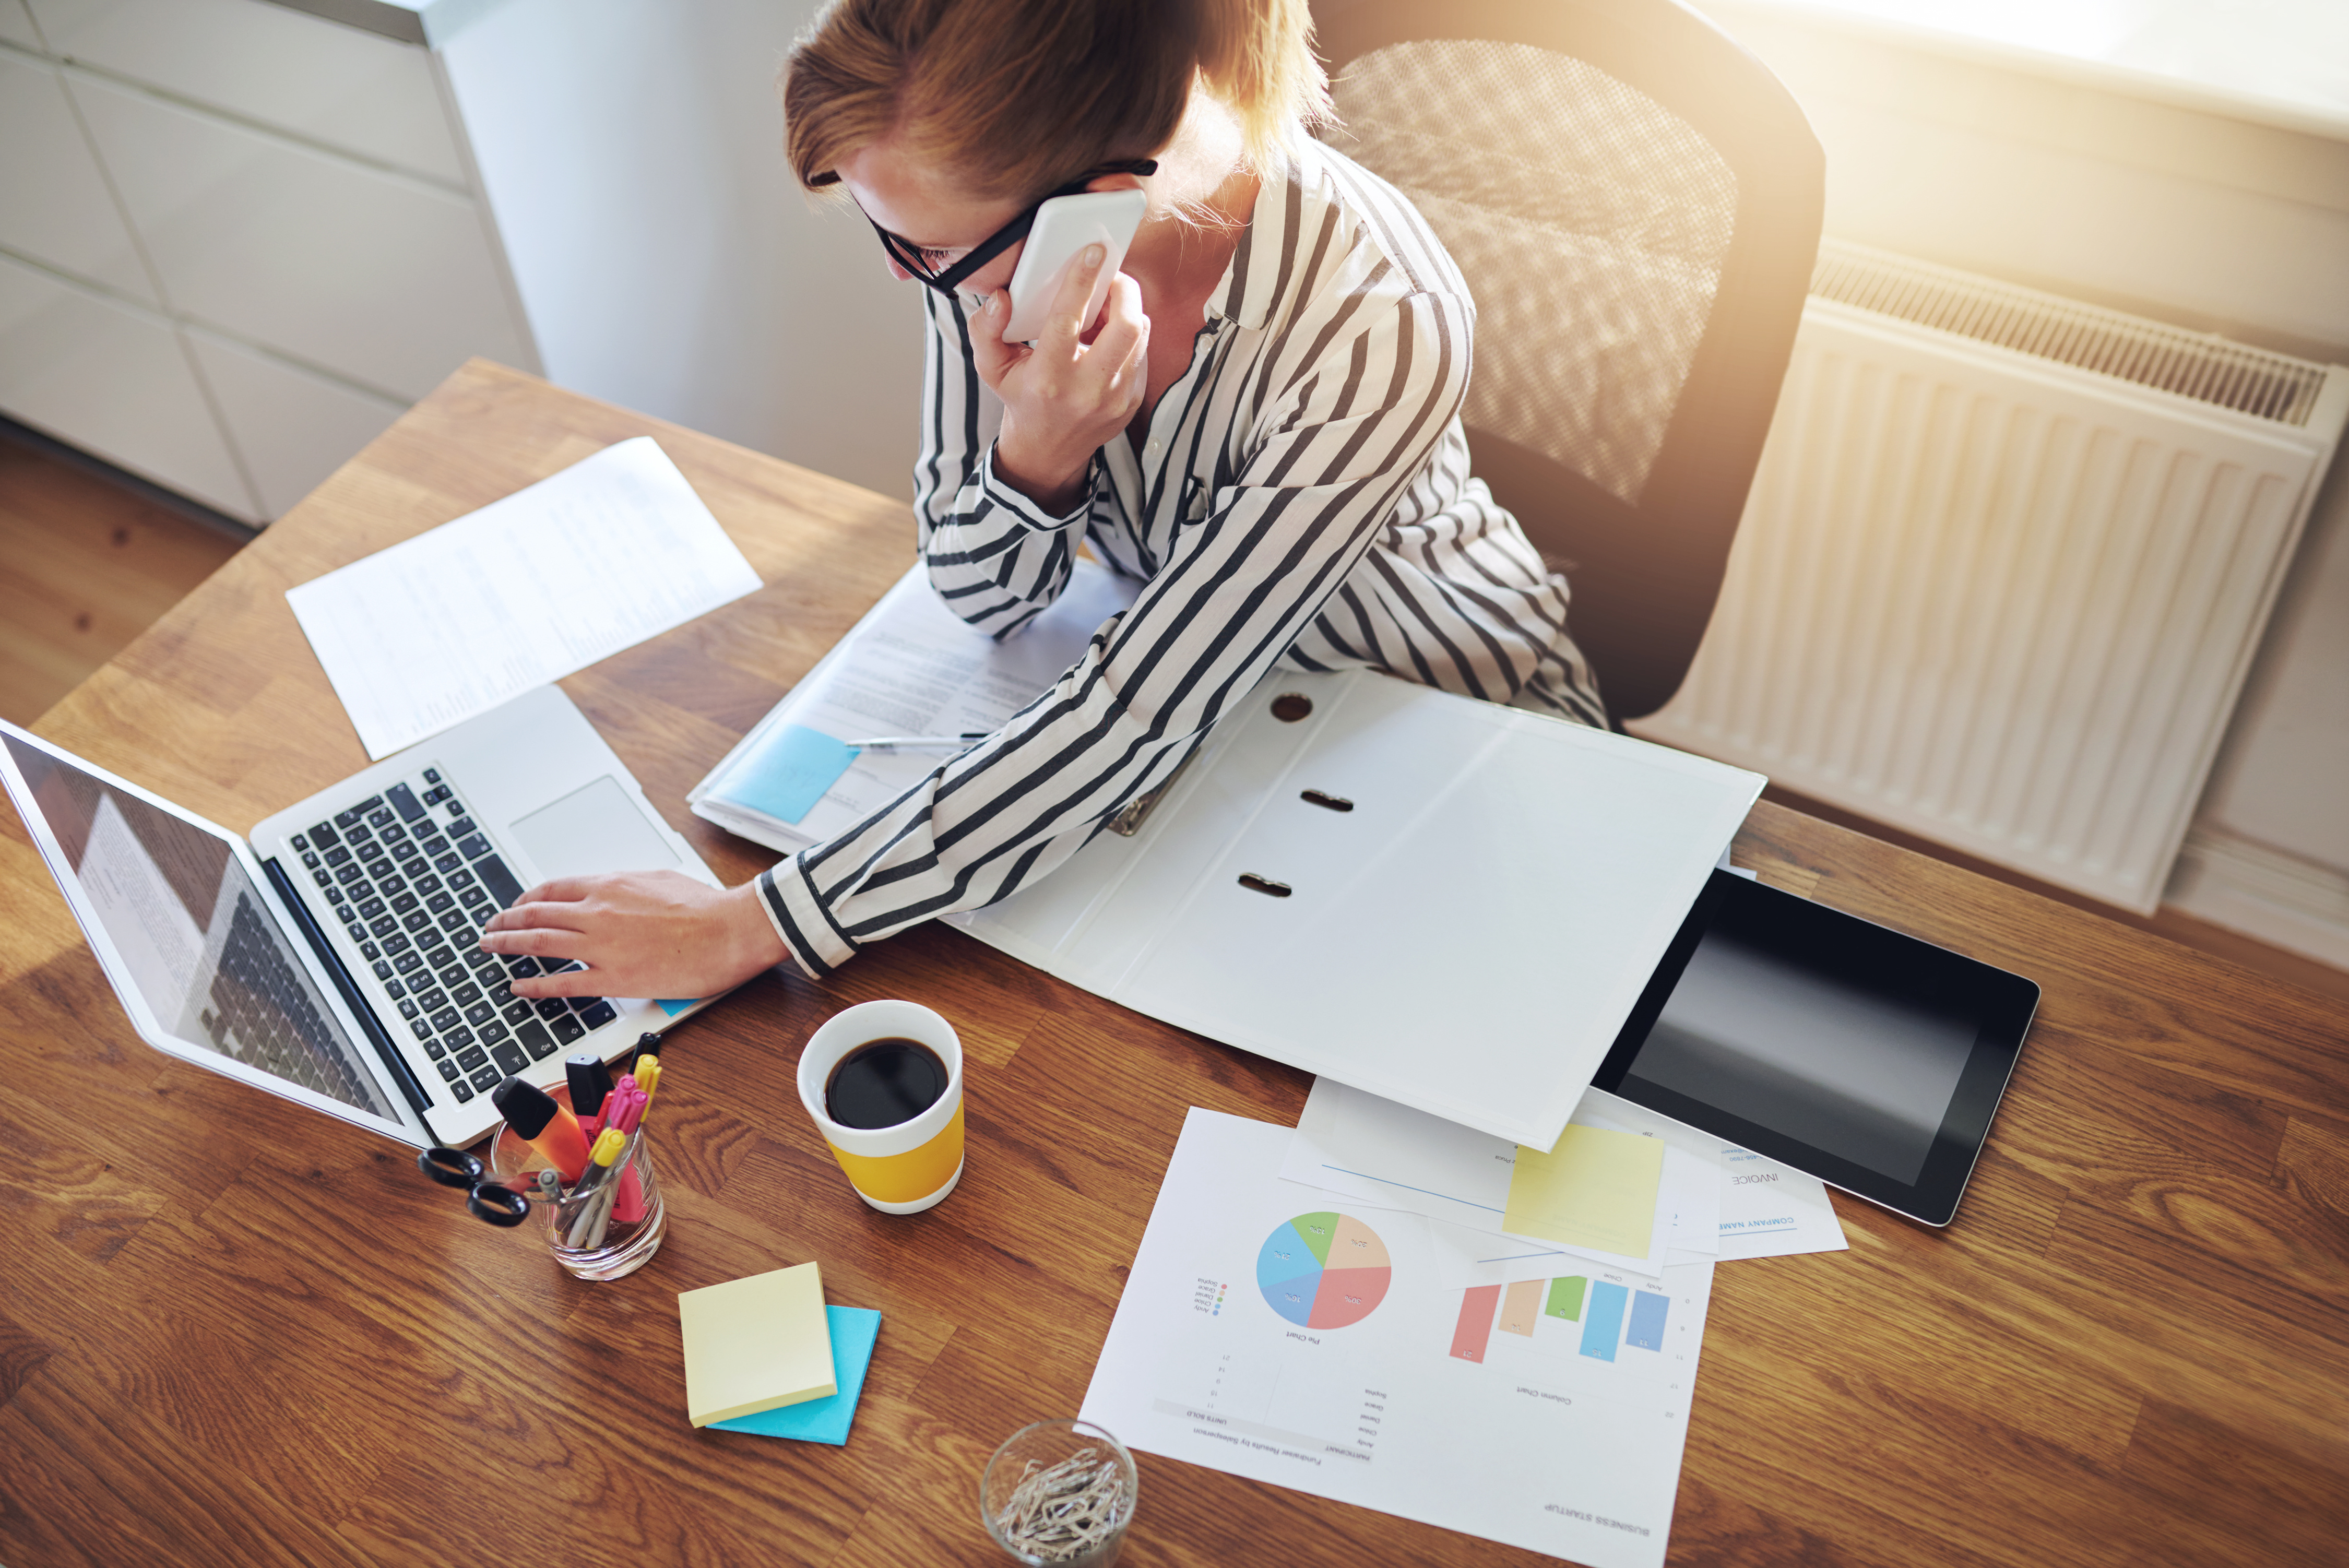 Successful businesswoman with an e-business working from an office at home telemarketing and taking orders over the phone or consulting with clients, high angle view